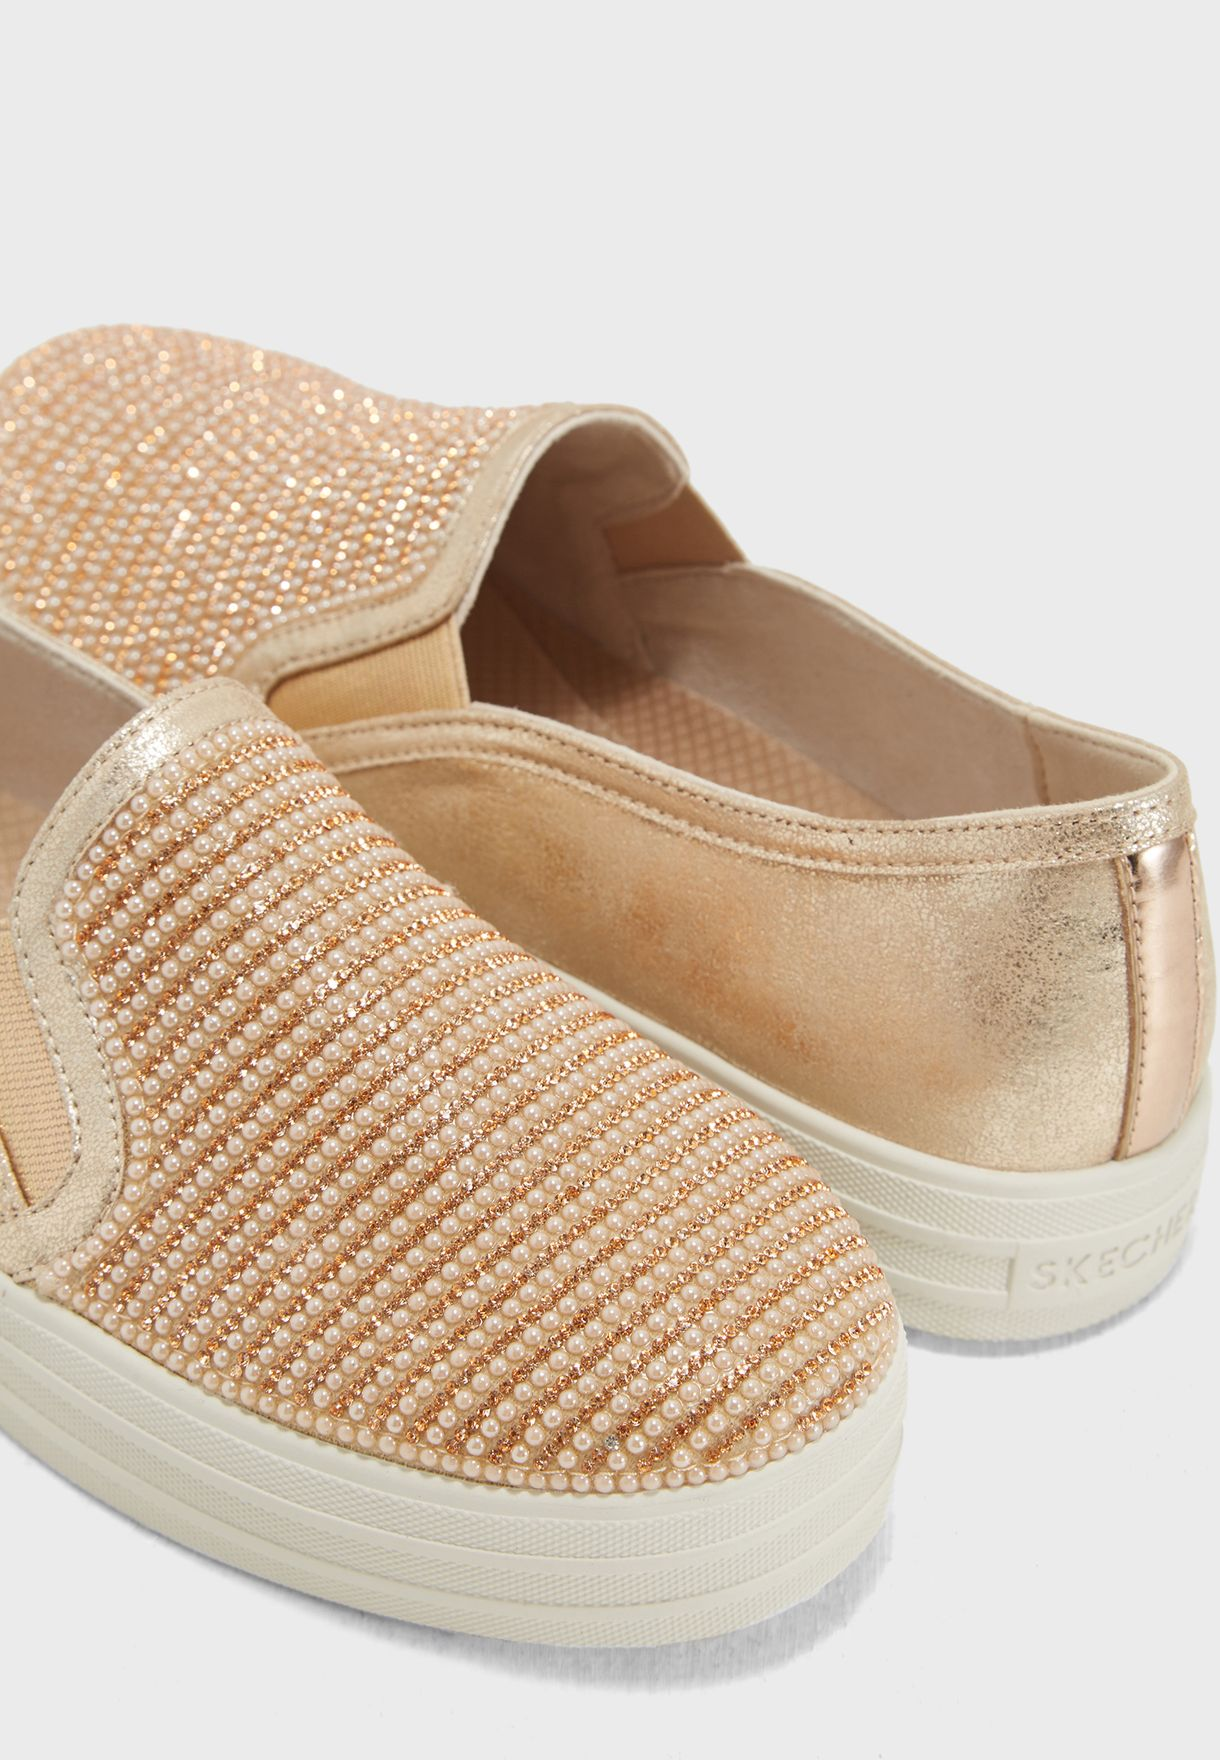 0d4ba103f0d Shop Skechers gold Double Up - Shiny Dancer 801-RSGD for Women in ...